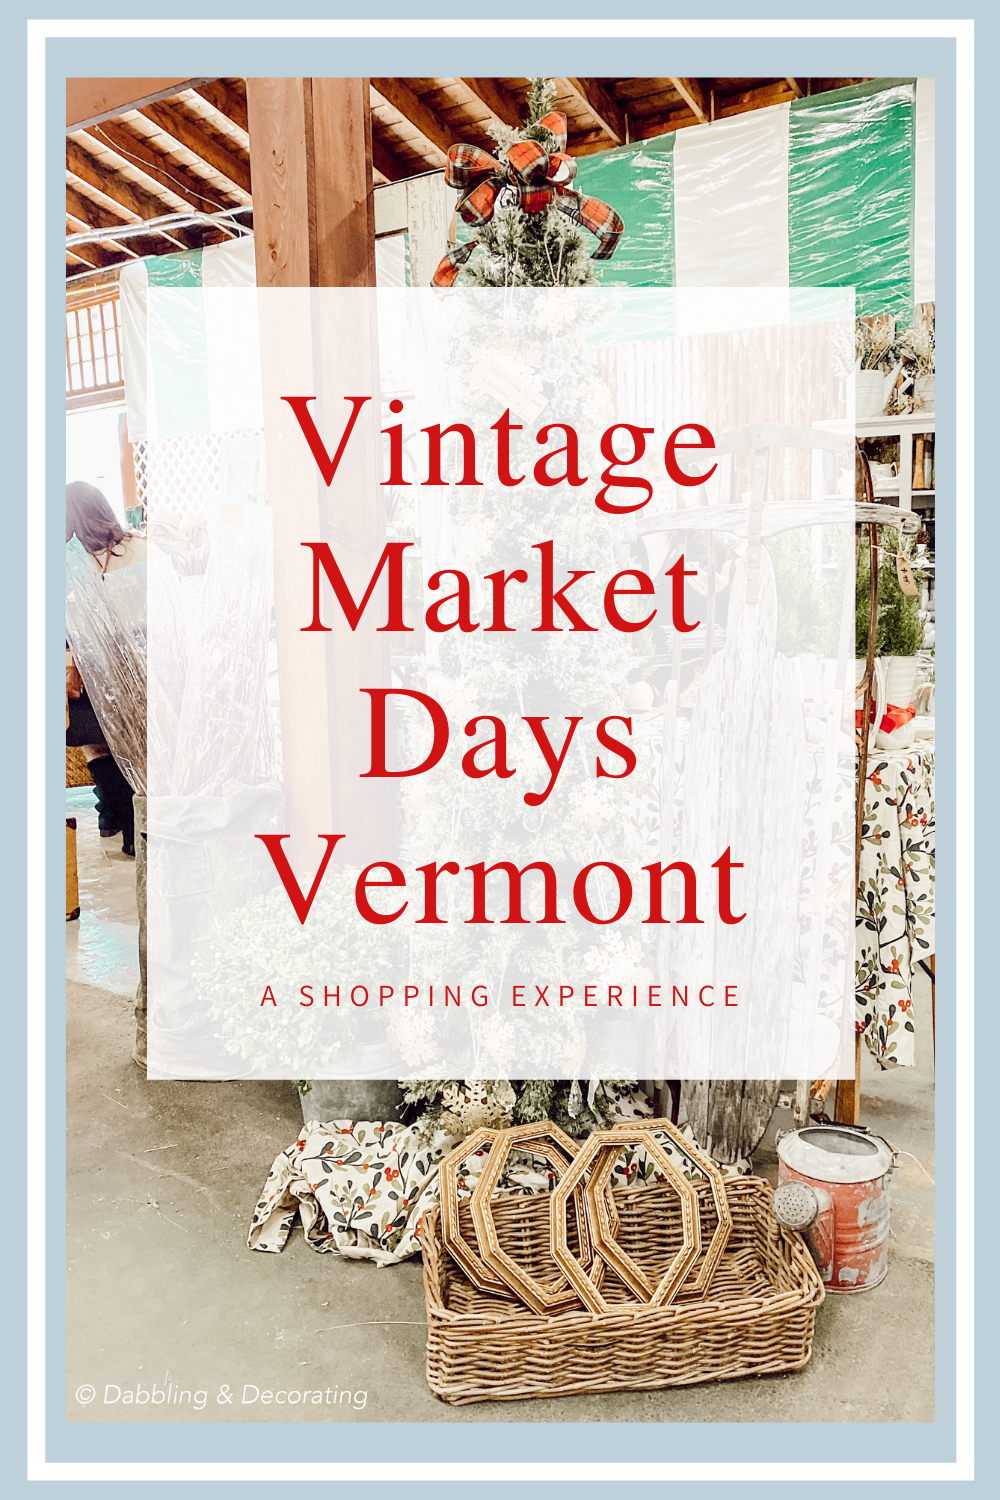 Vintage Market Days Vermont A Shopping Experience